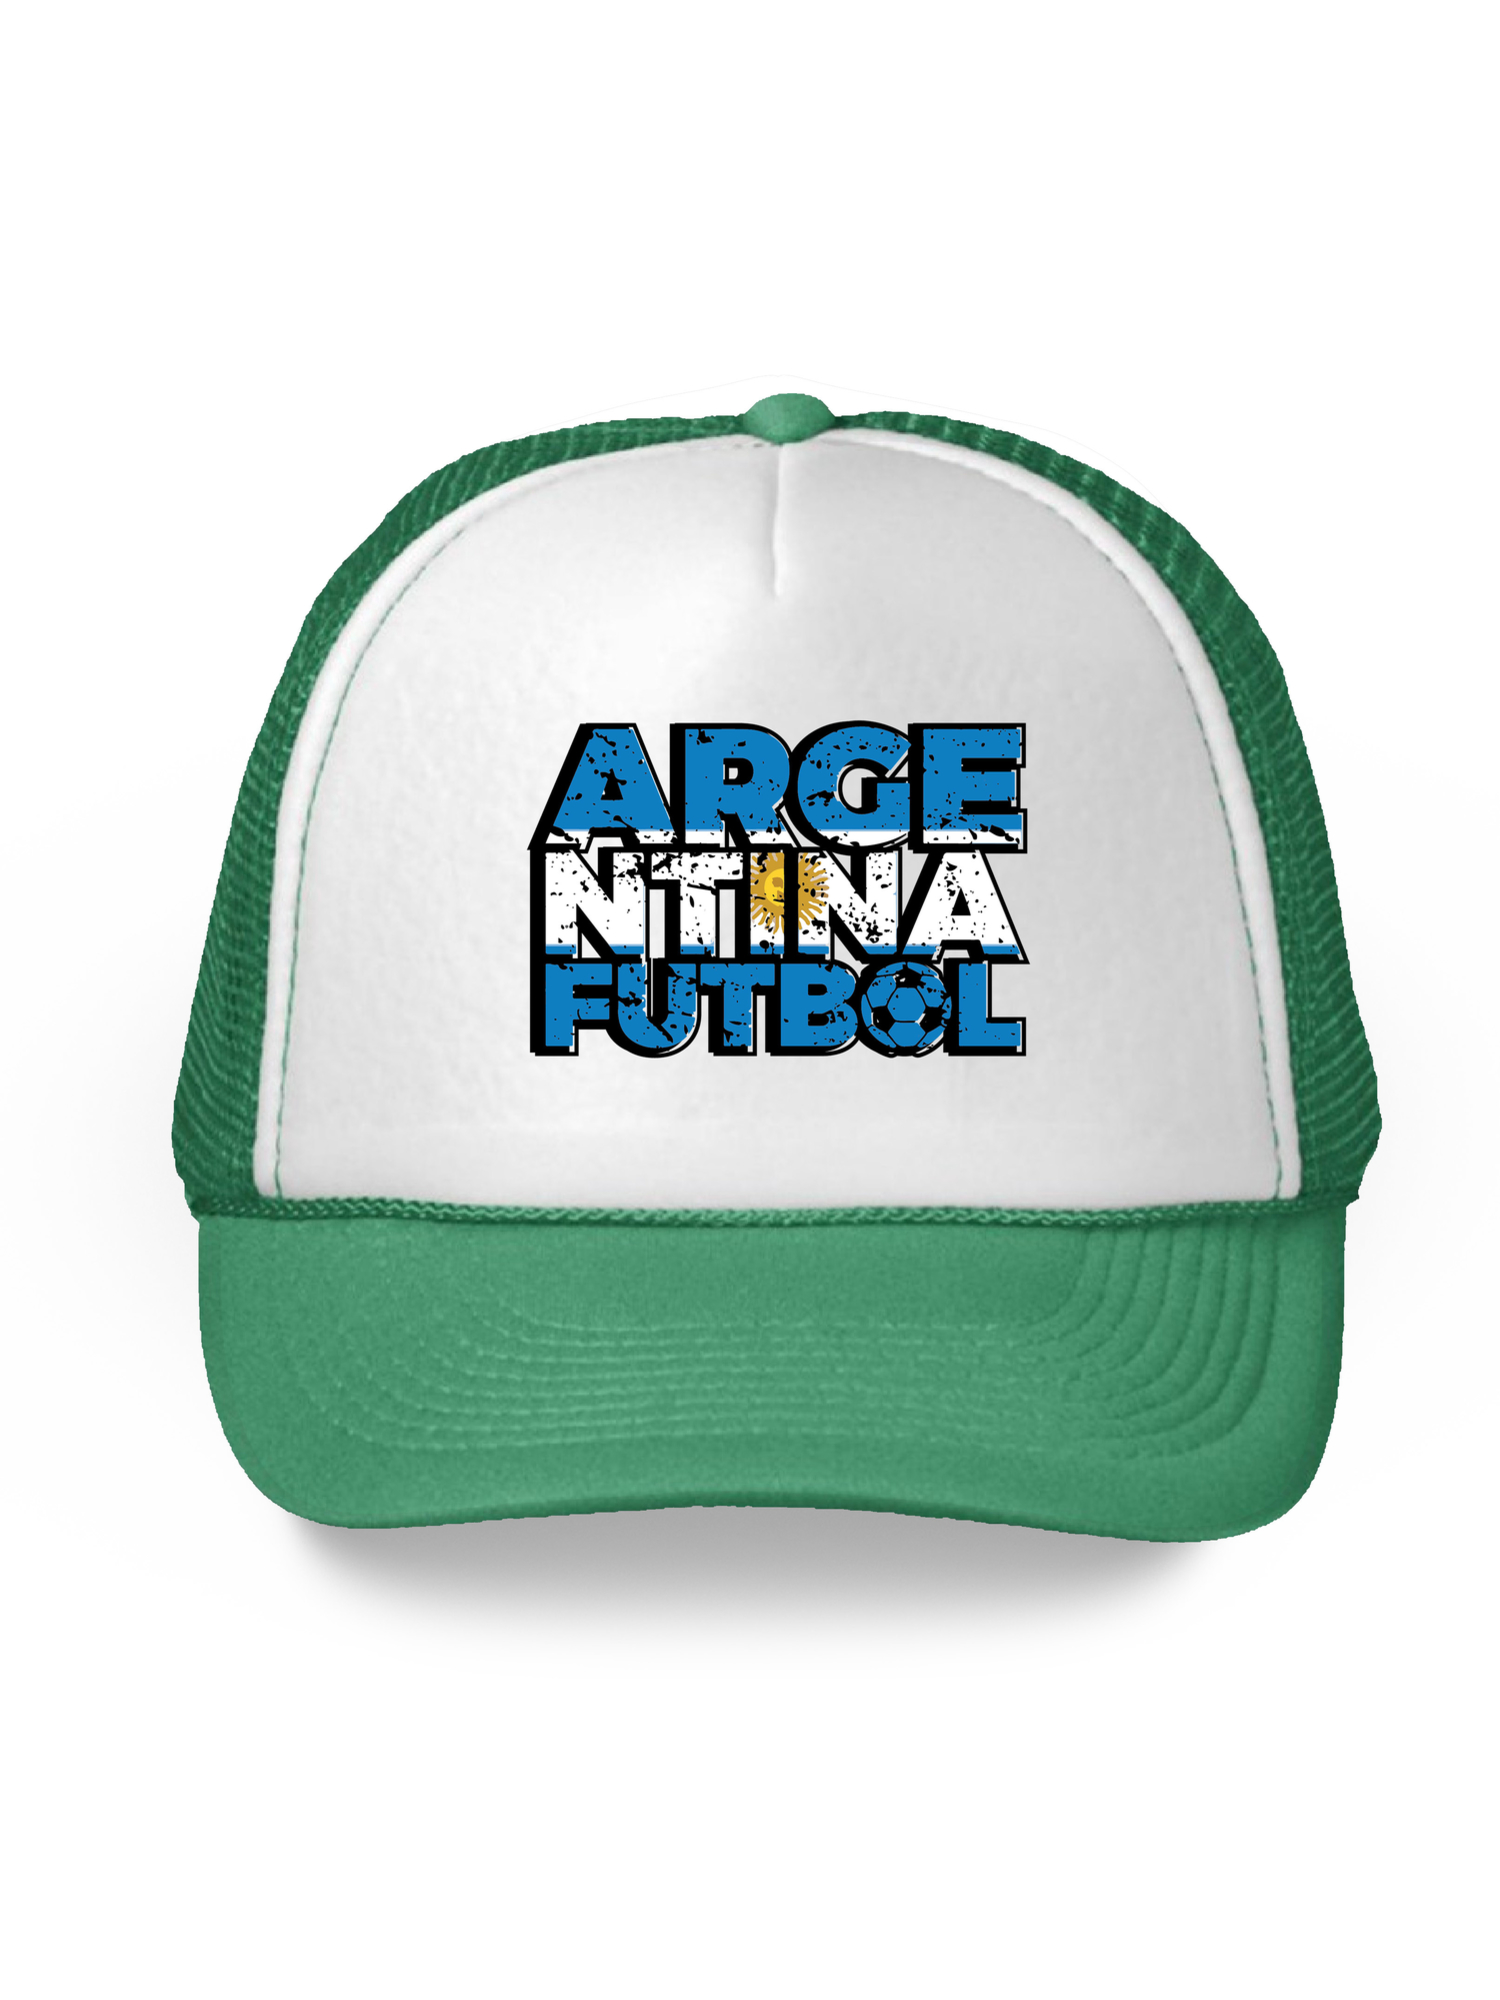 Awkward Styles Argentina Futbol Hat Argentina Trucker Hats for Men and  Women Hat Gifts from Argentina Argentinian Soccer Cap Argentinian Hats  Unisex ... 05f5c1030e0